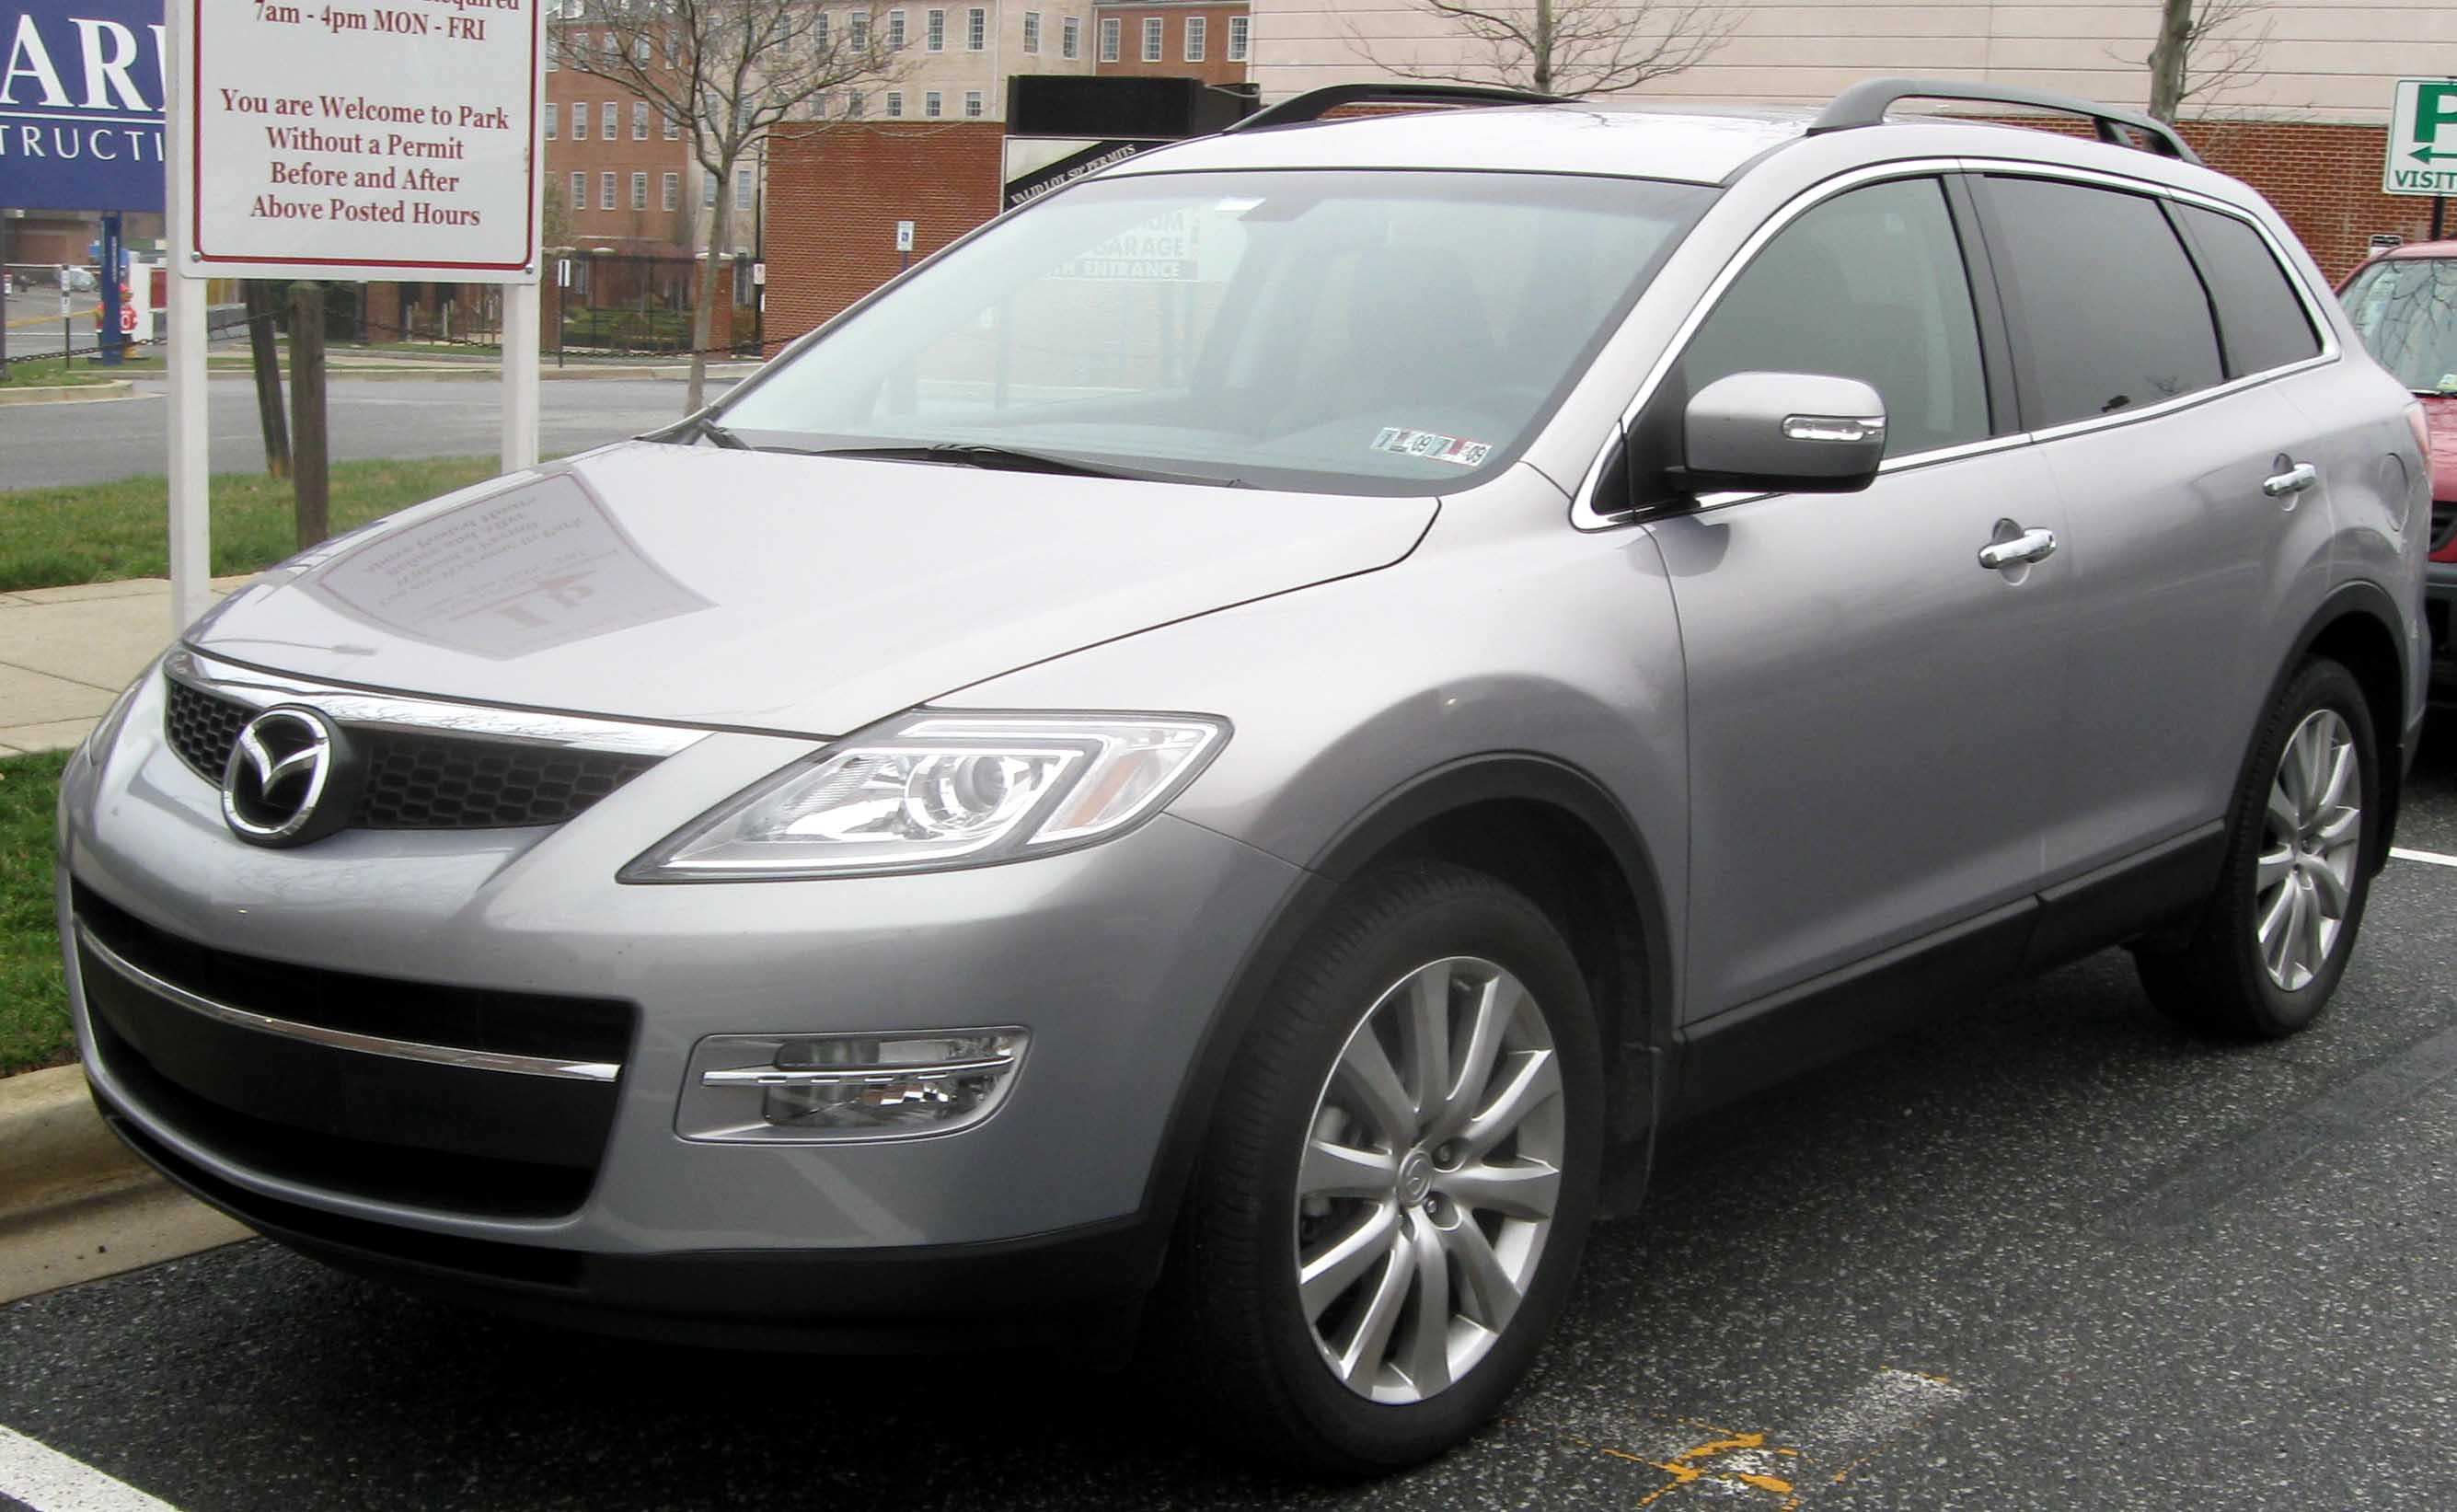 https://upload.wikimedia.org/wikipedia/commons/1/14/07-09_Mazda_CX-9.jpg